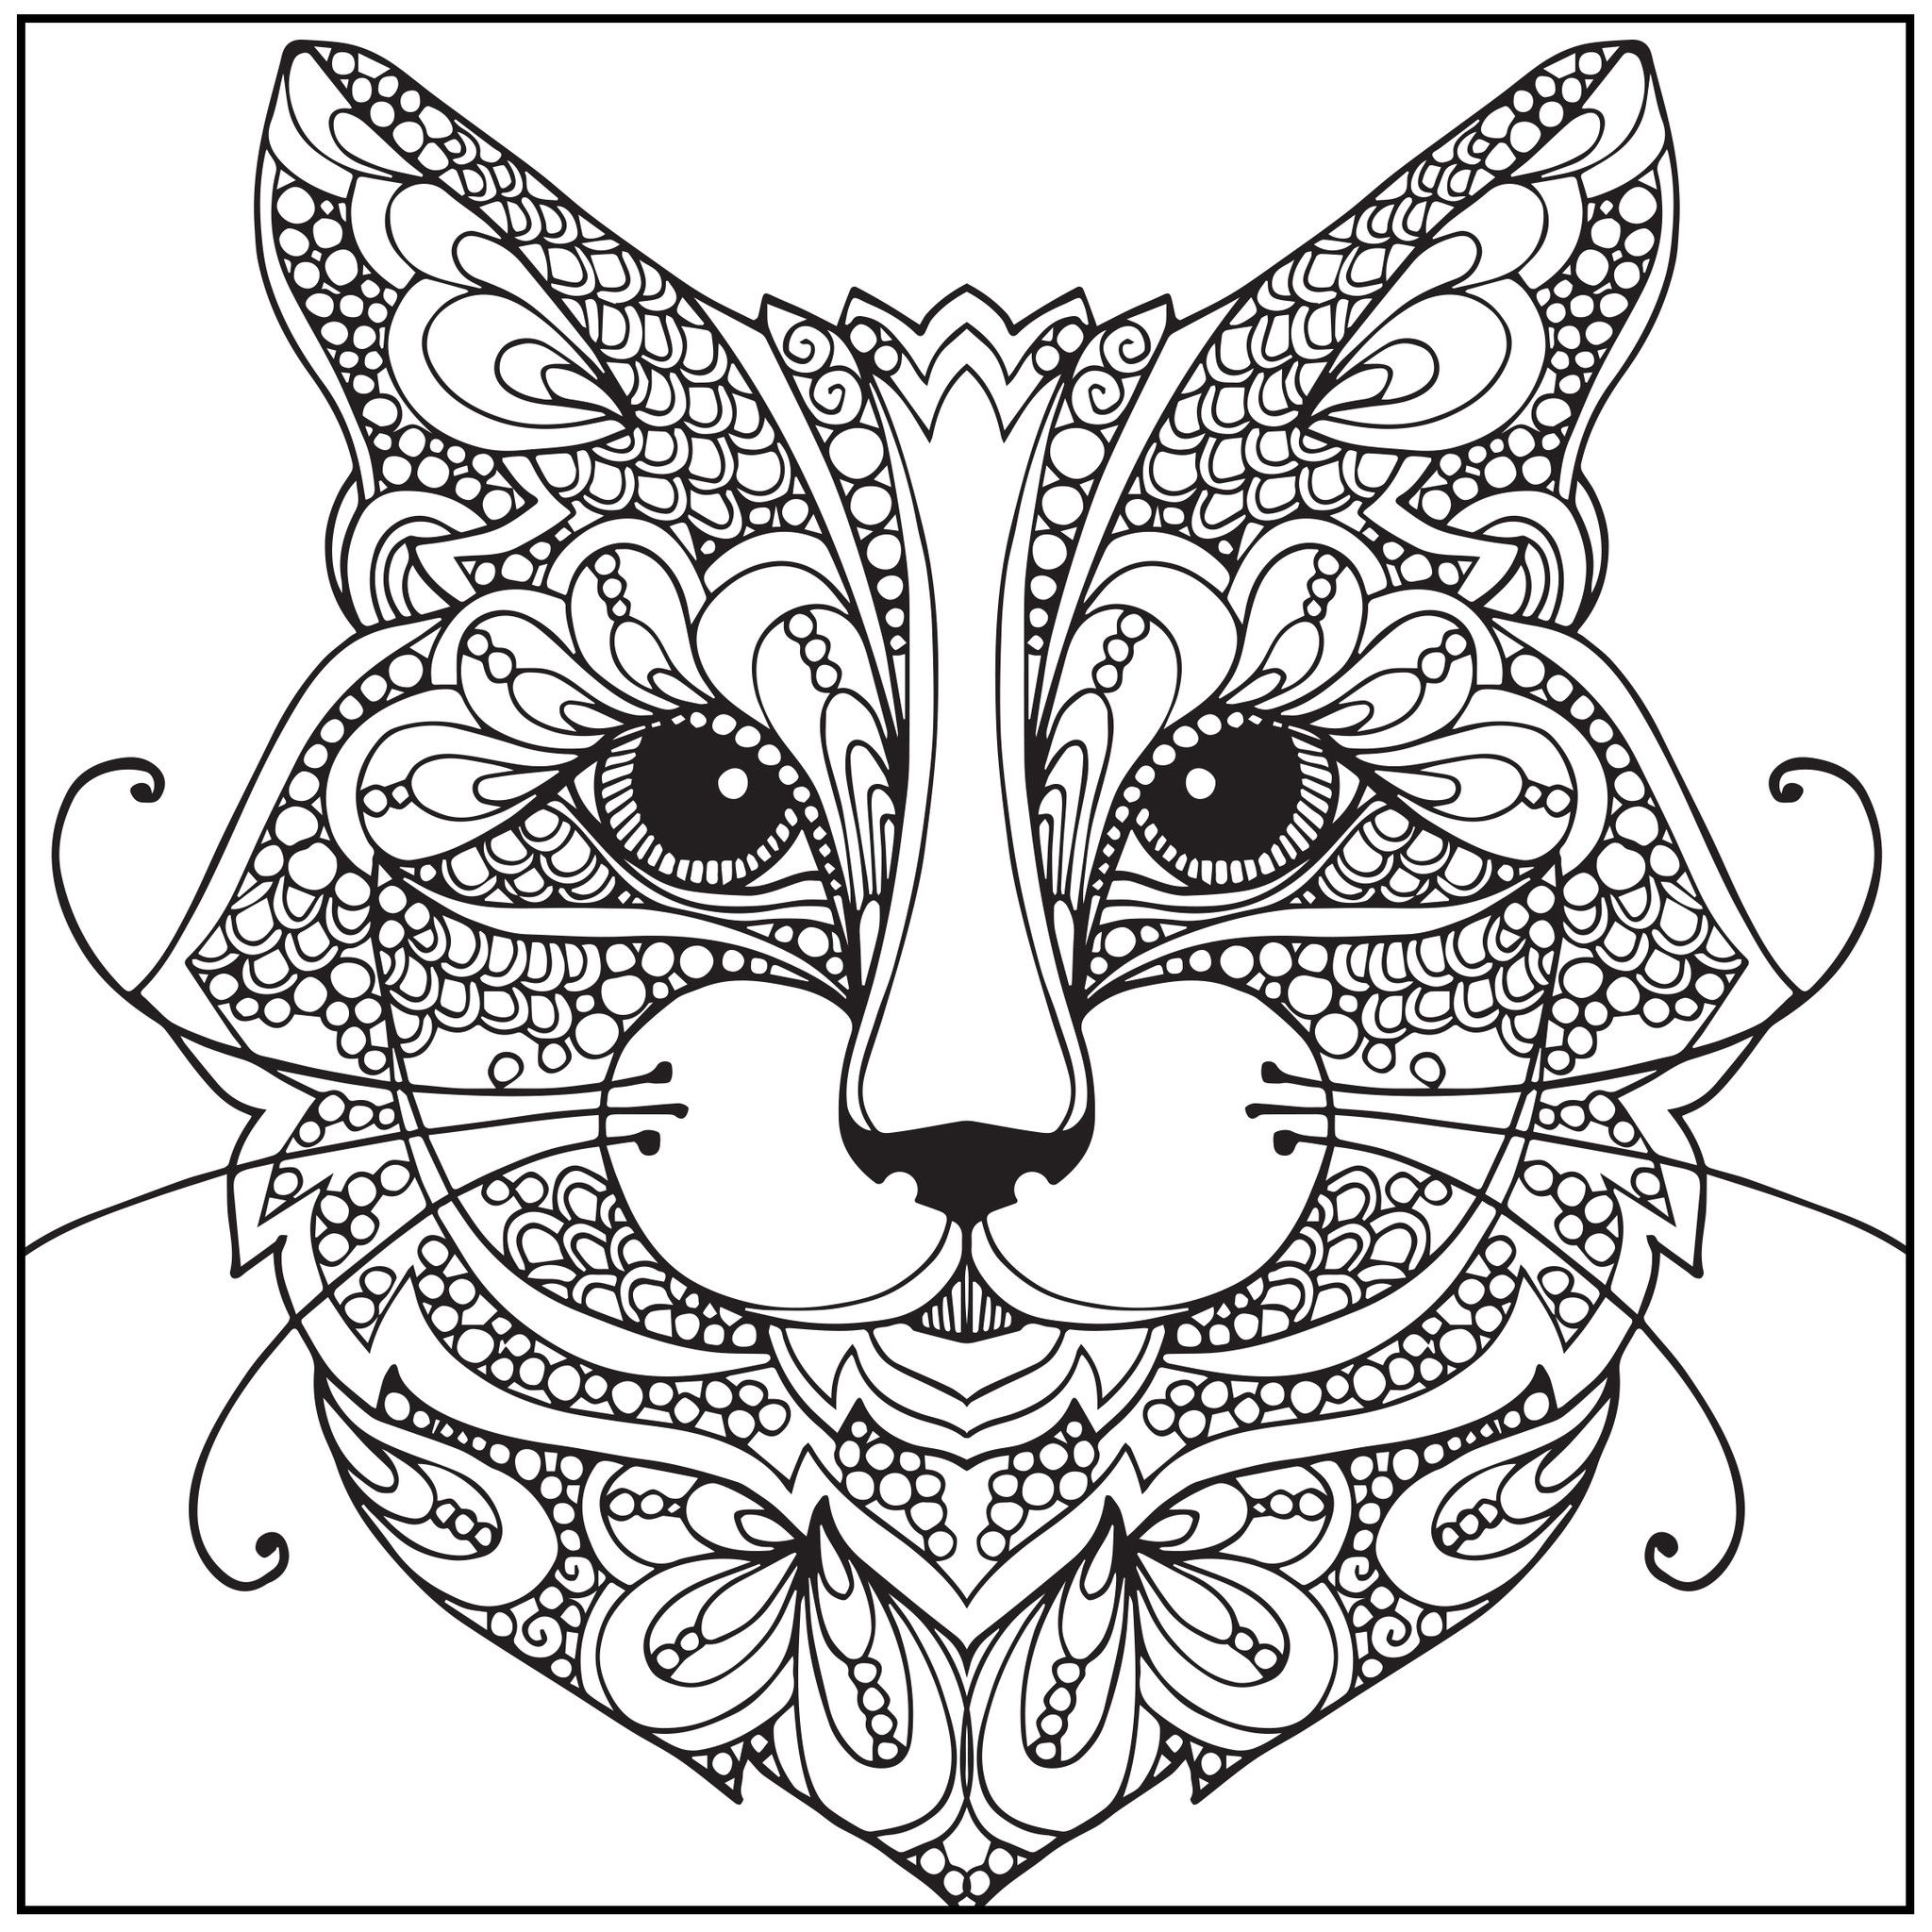 Coloring pages relaxing - Impressive Inspiration Cat Coloring Pages For Adults Cat Coloring Pages For Adults With Cat Coloring Pages For Adults